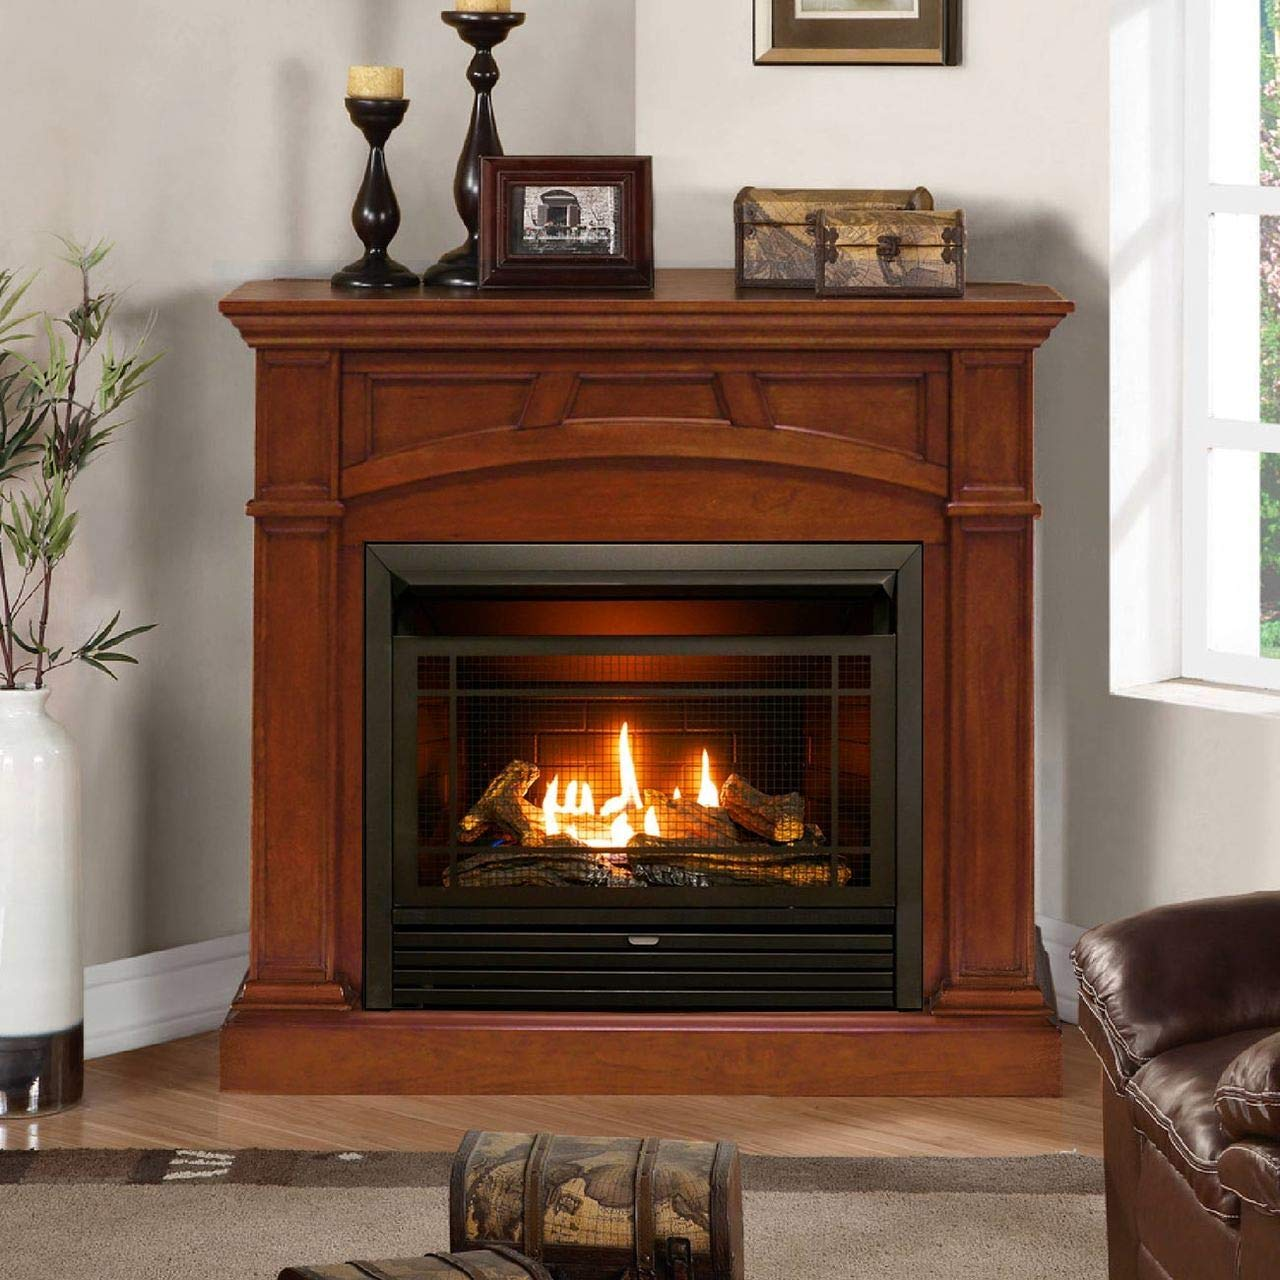 Duluth Forge Dual Fuel Ventless Gas Fireplace - 26,000 BTU, Remote Control, Heritage Cherry Finish by Duluth Forge